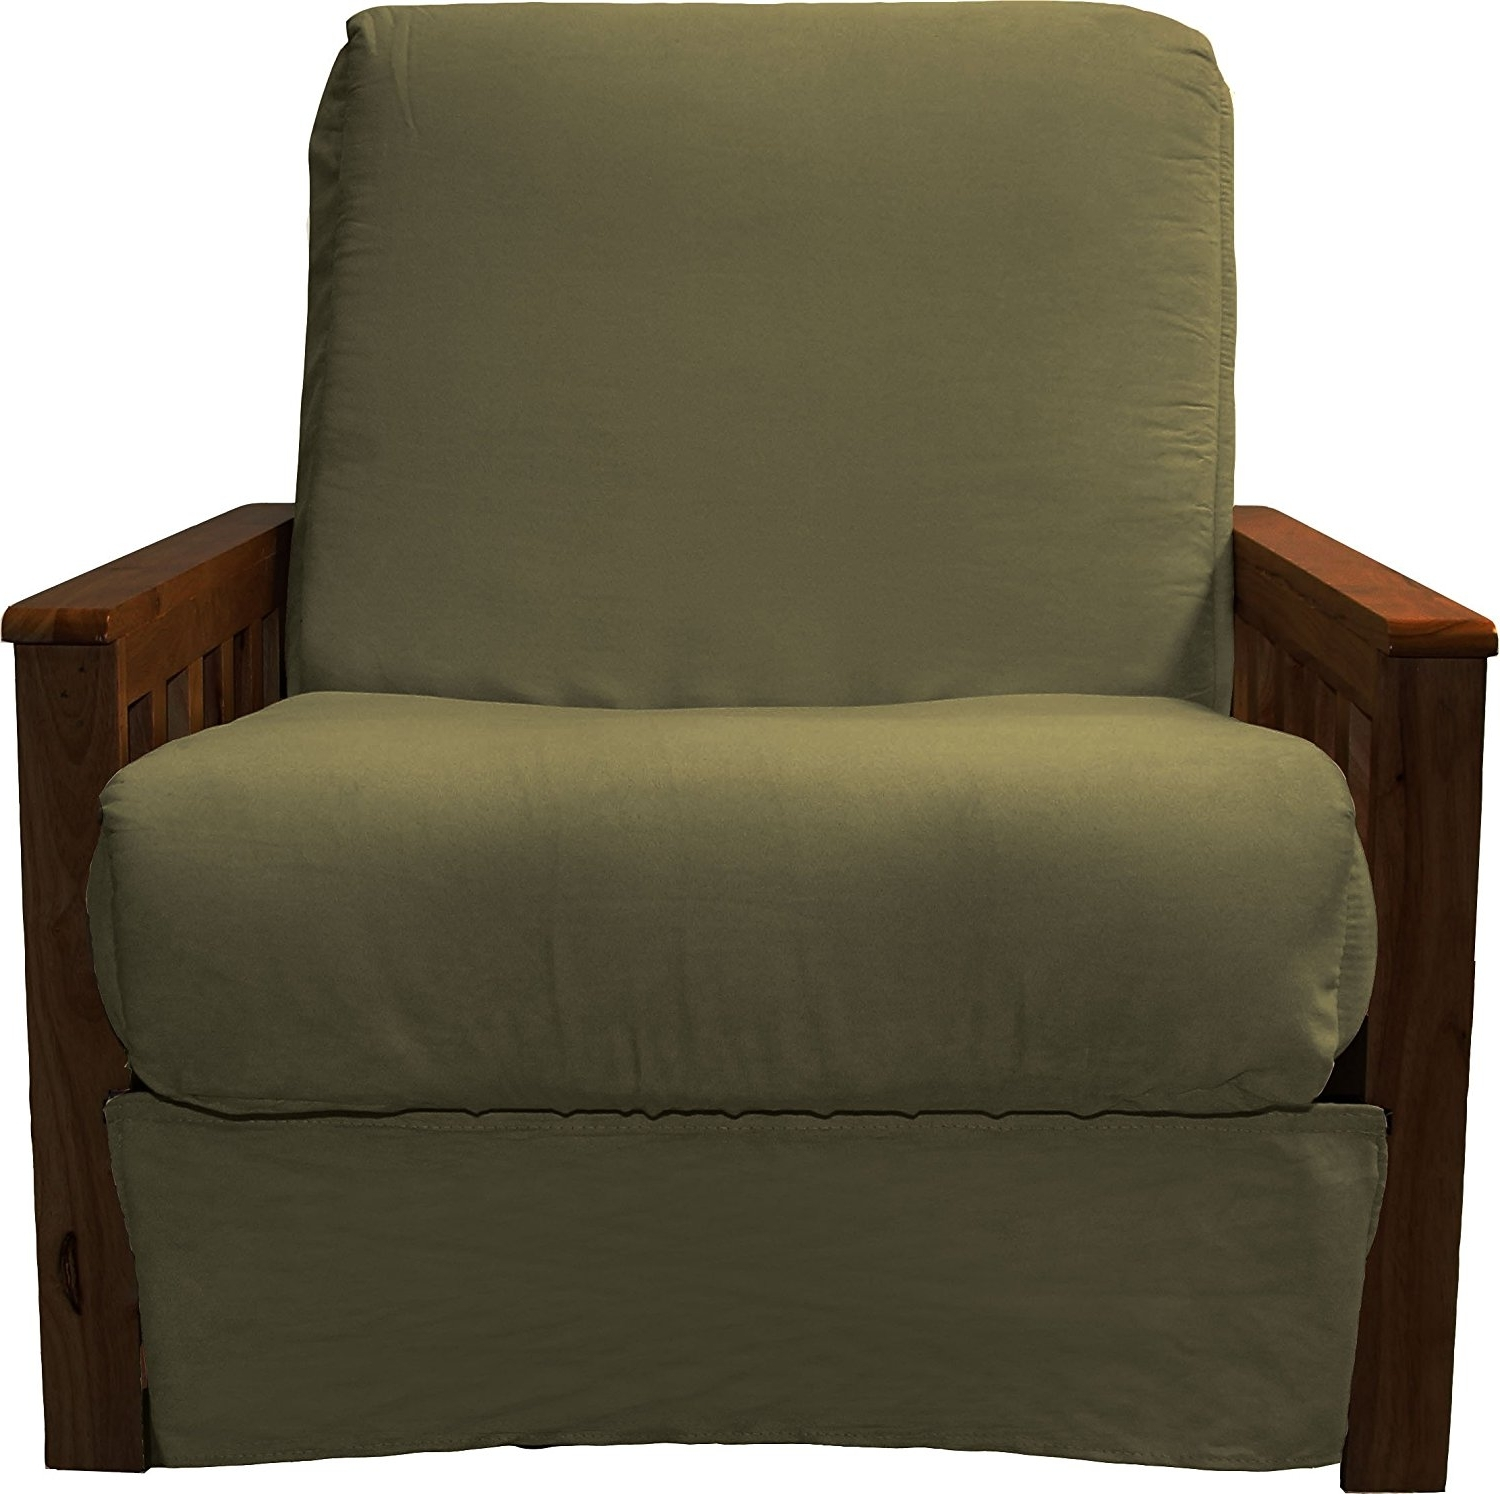 Newest Big Sofa Chairs In Oversized Sleeper Chairs & Sofas For Heavy People (View 5 of 15)